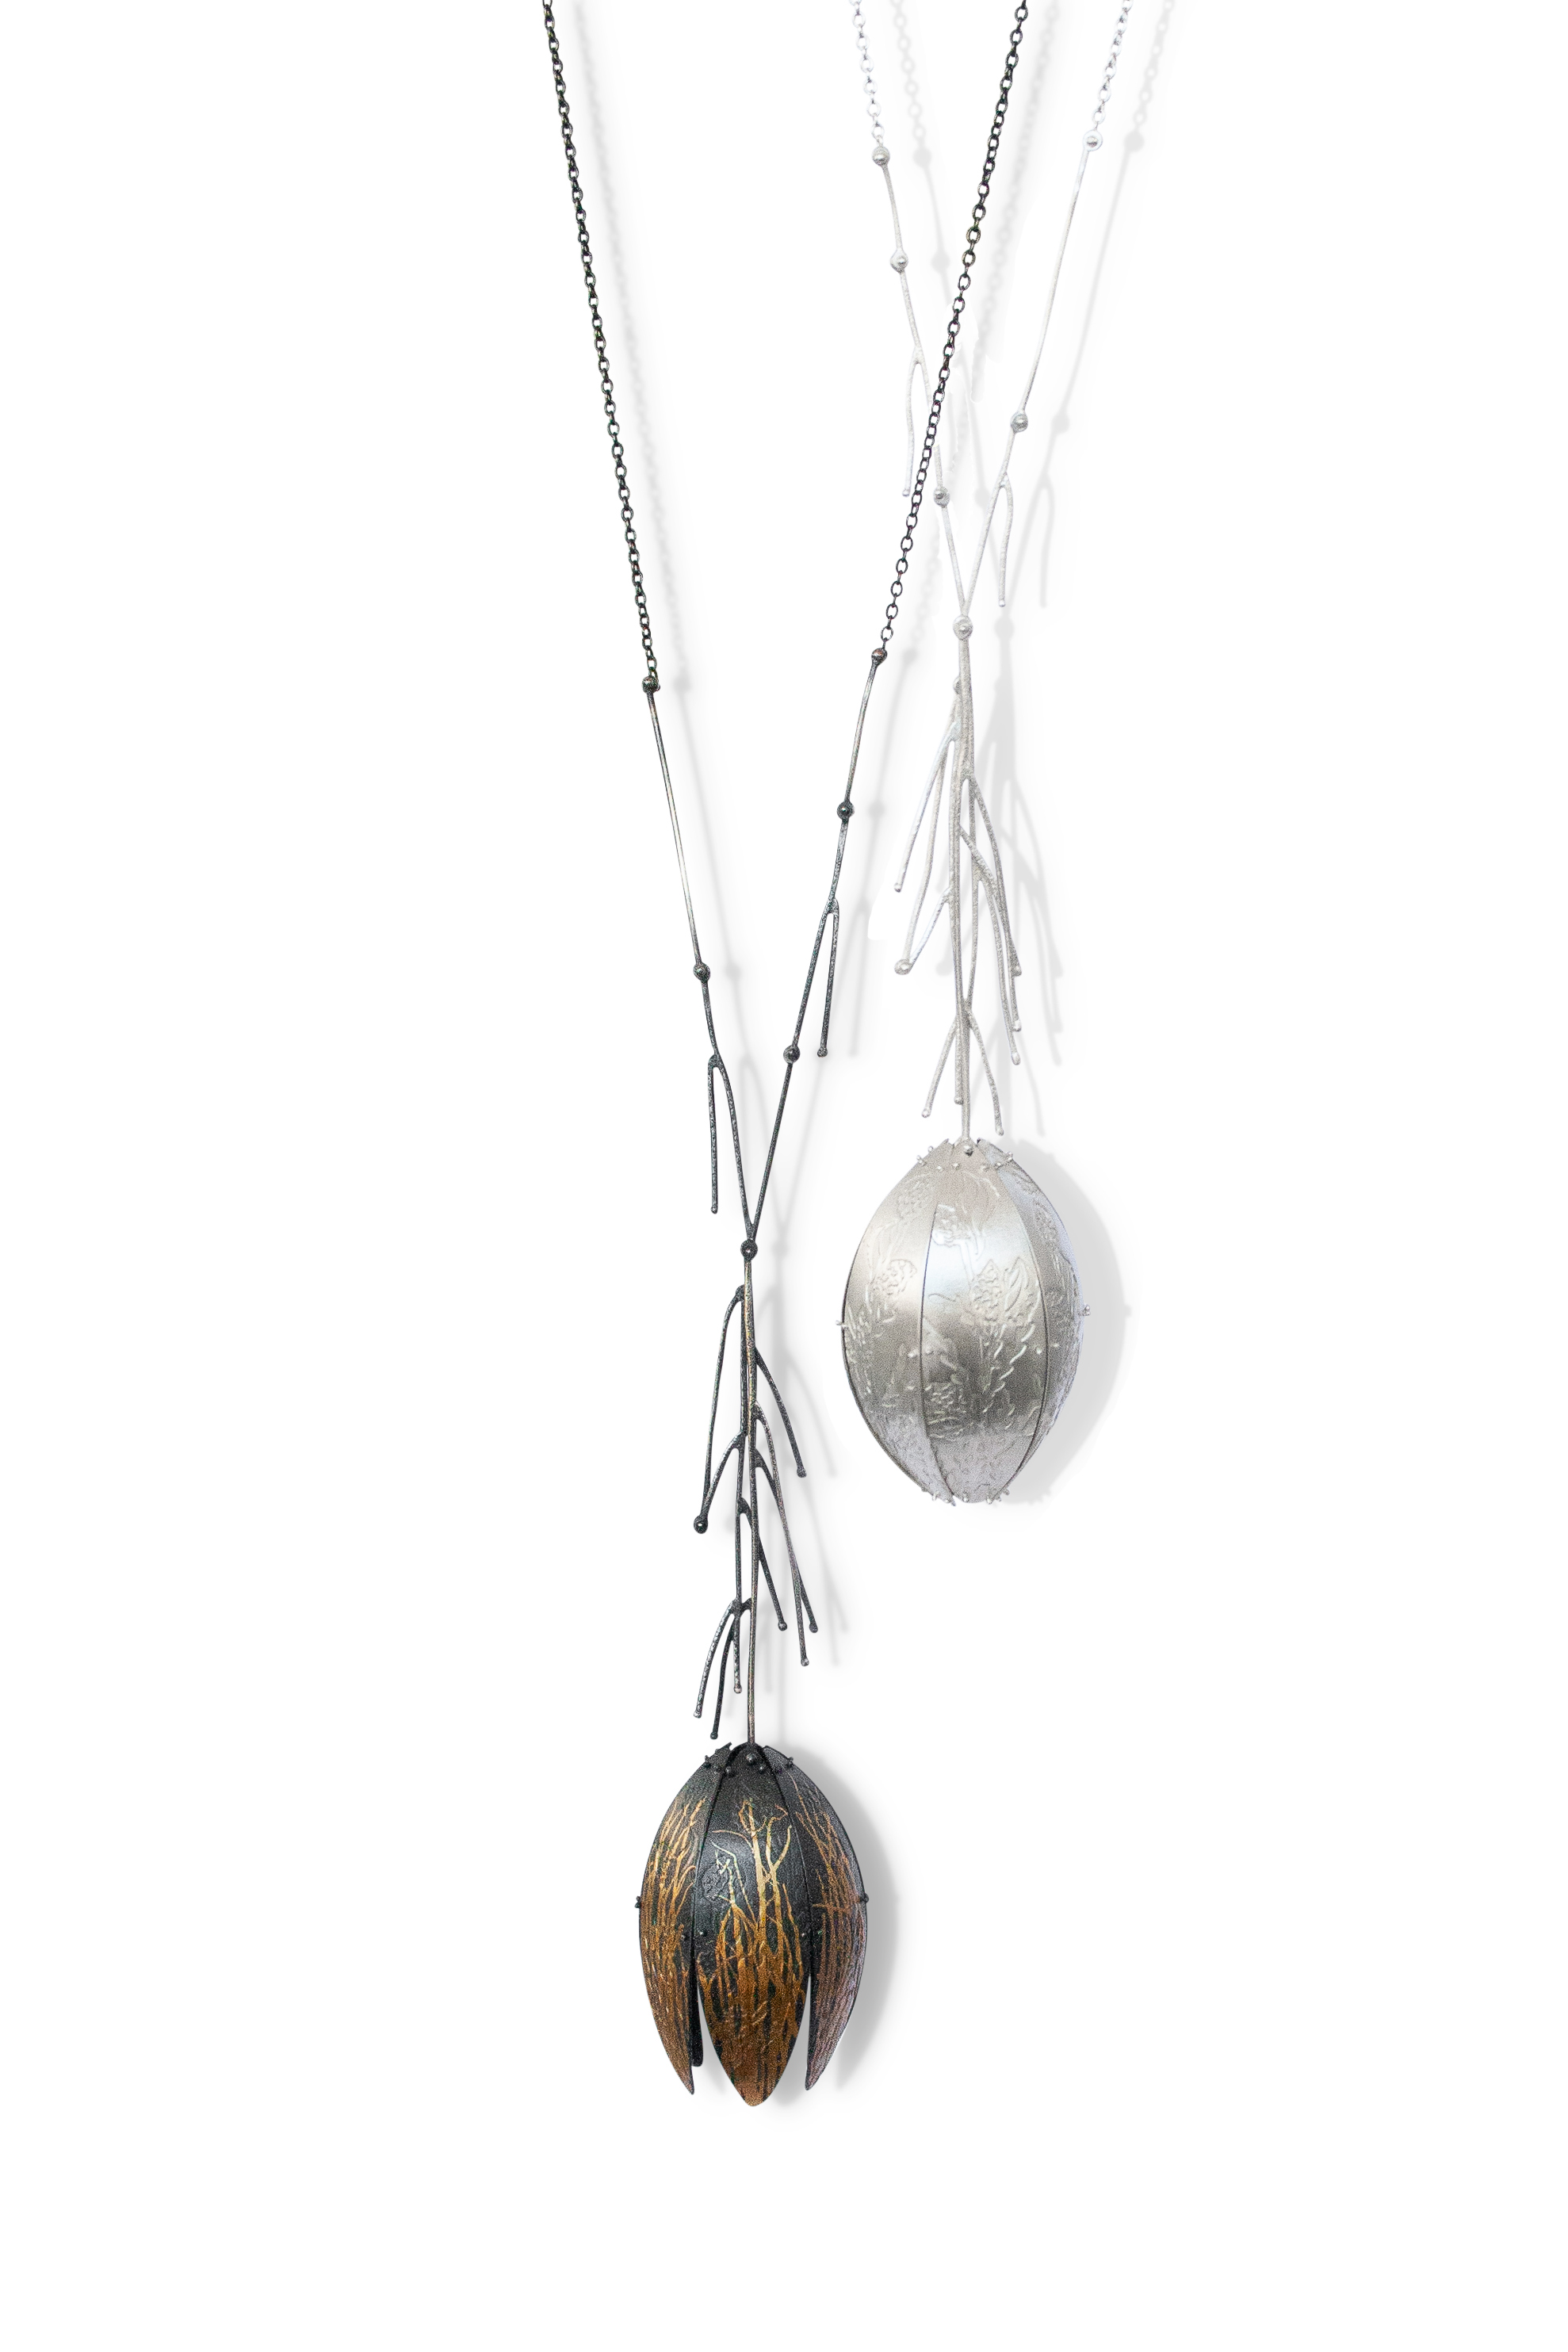 adaptaion-and-aftermath-pendants.jpg